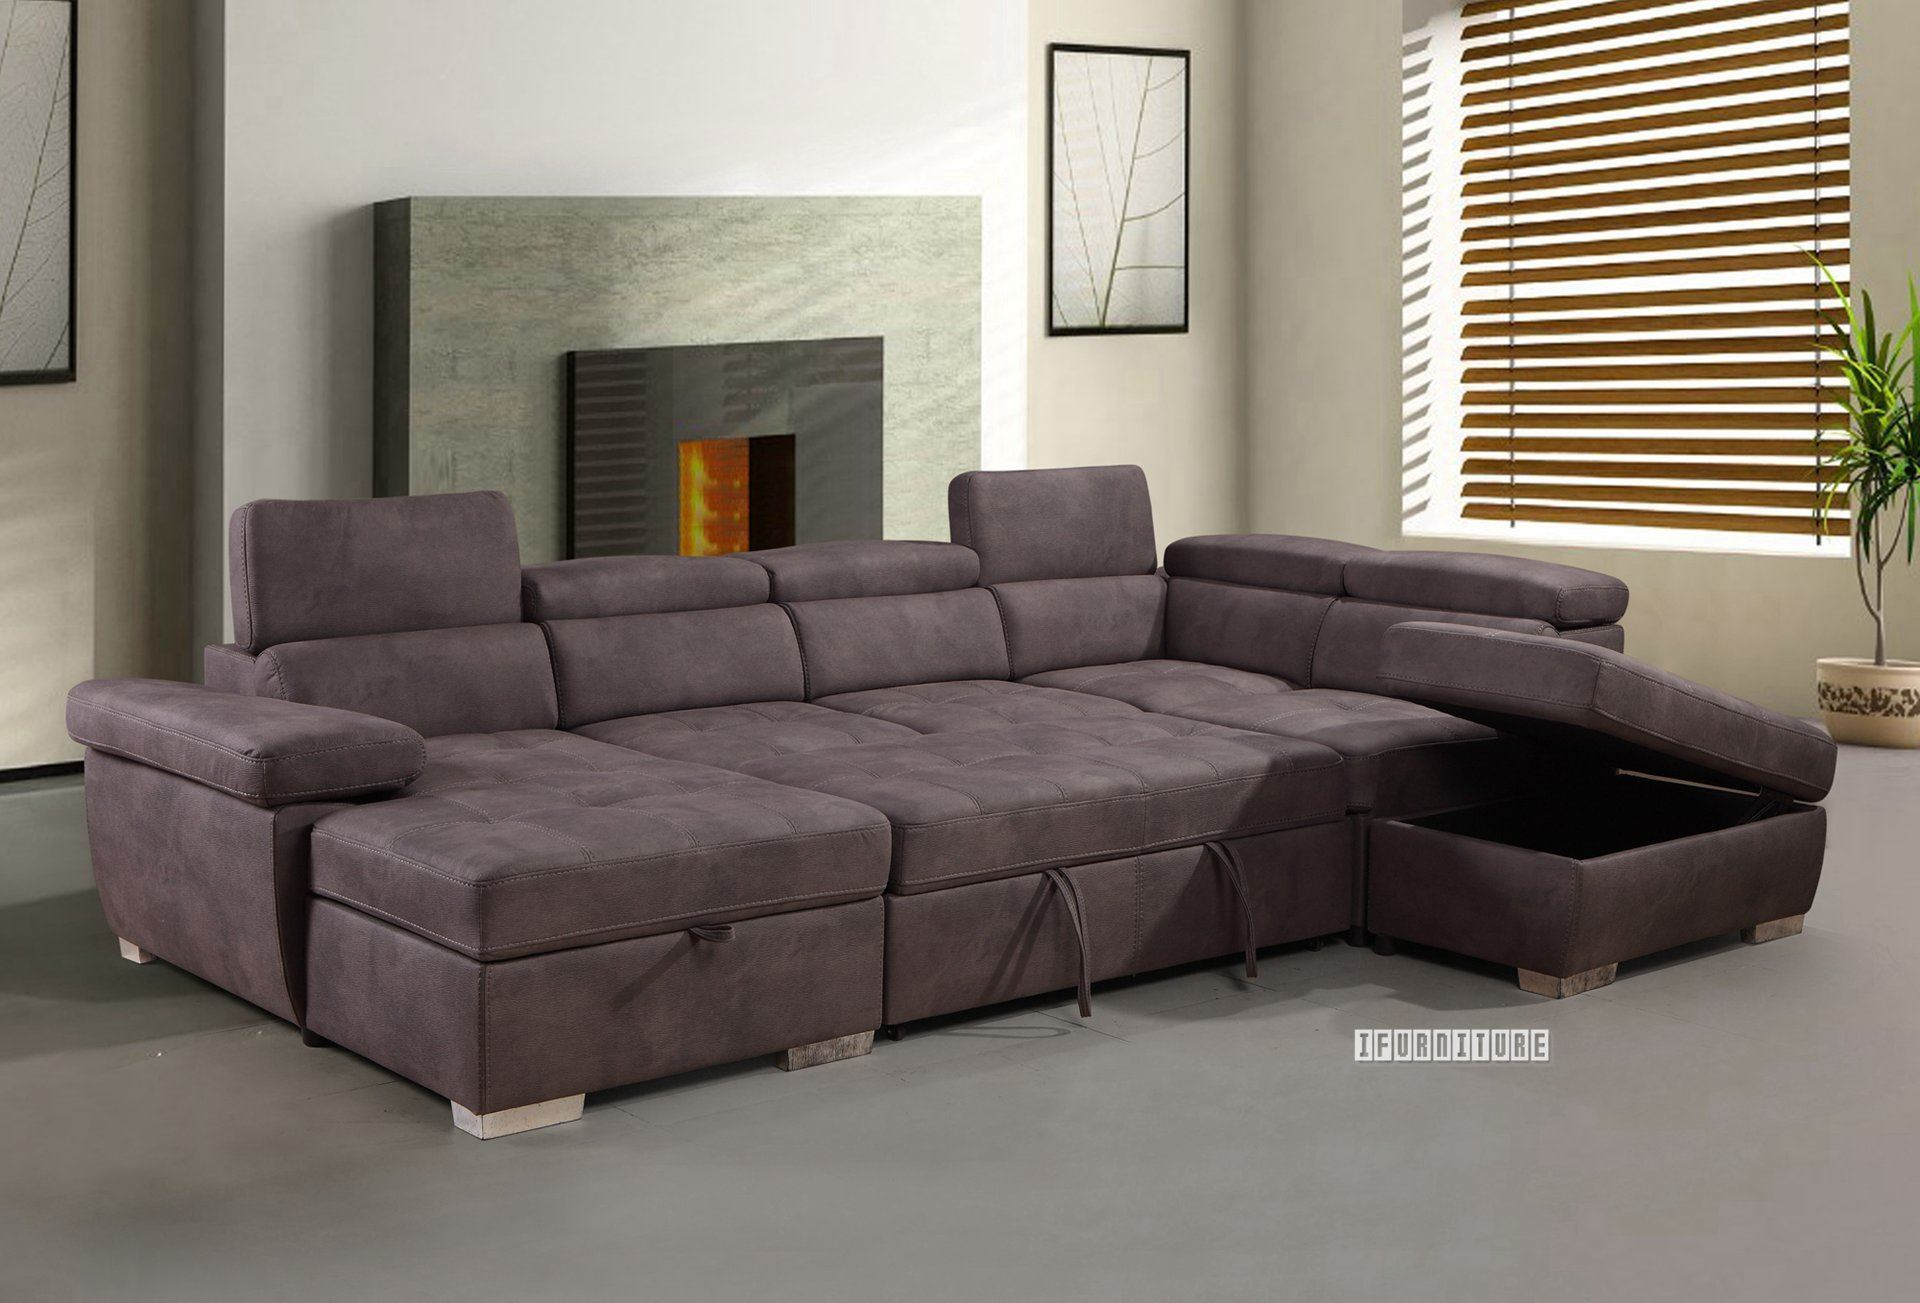 Amando Sectional Sofa/ Sofa Bed With Storage *titanium Grey Intended For Hartford Storage Sectional Futon Sofas (View 12 of 15)